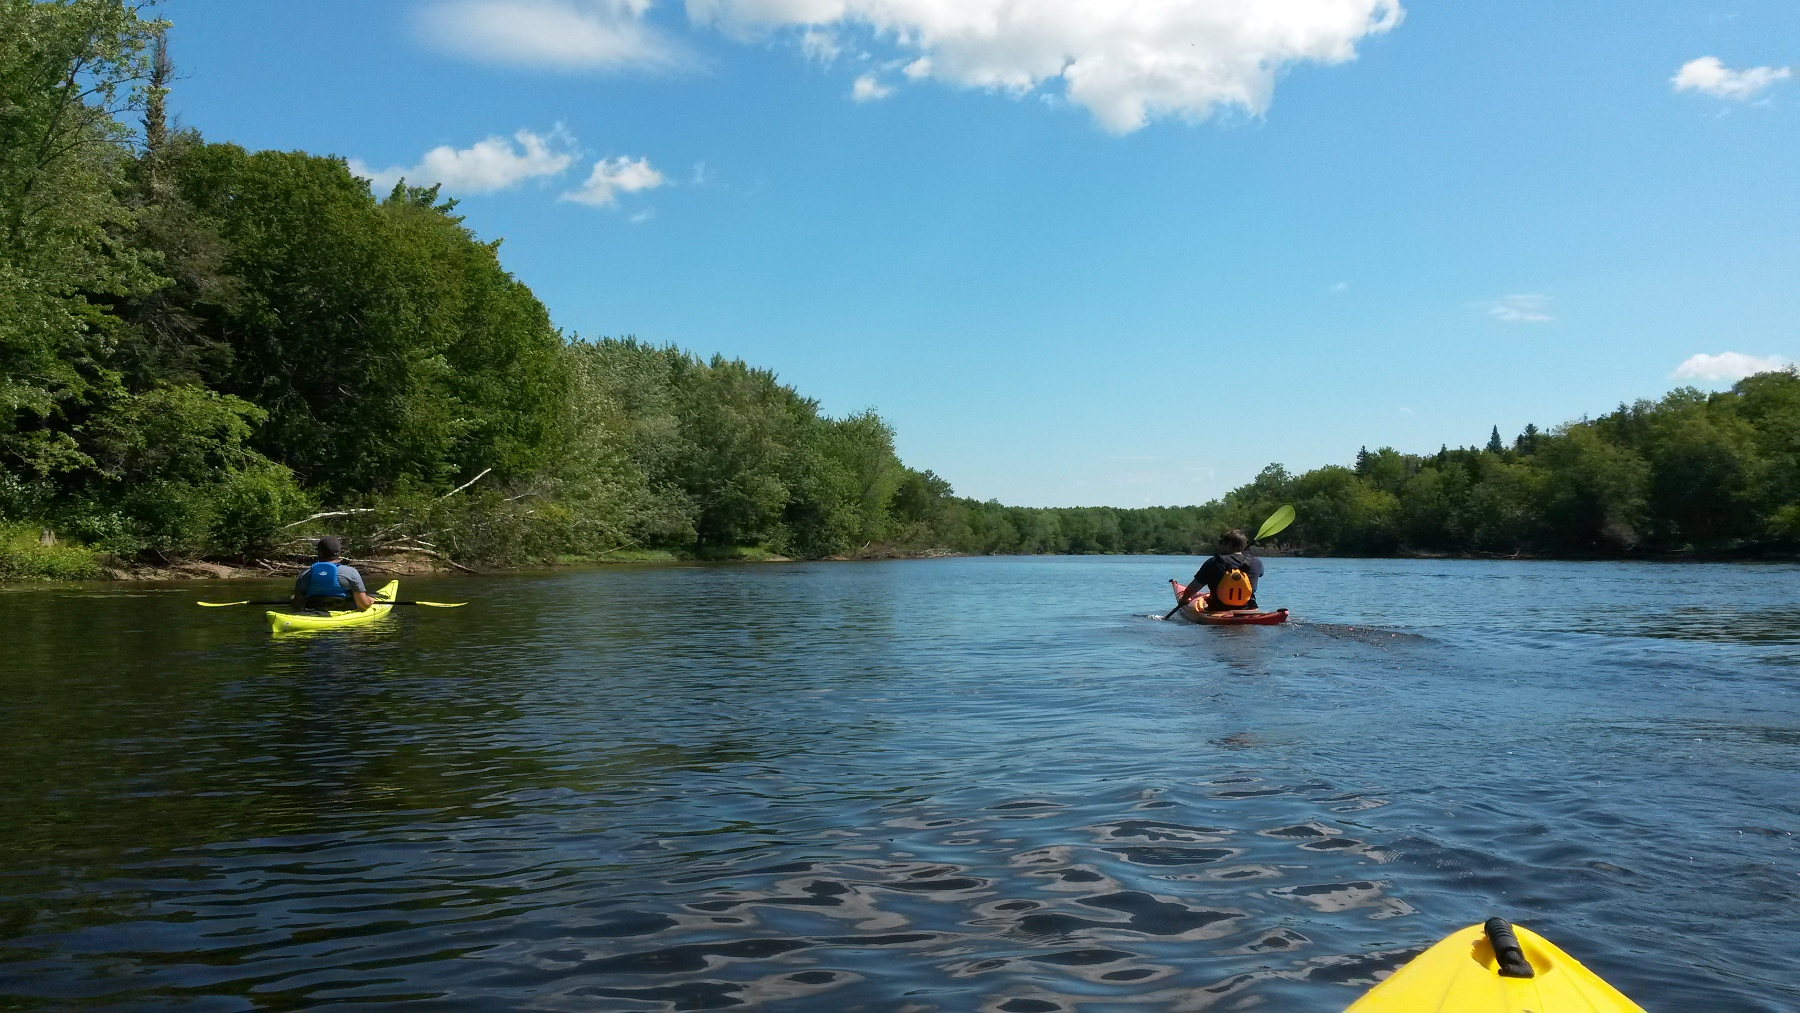 Kayaking on the Oromocto River